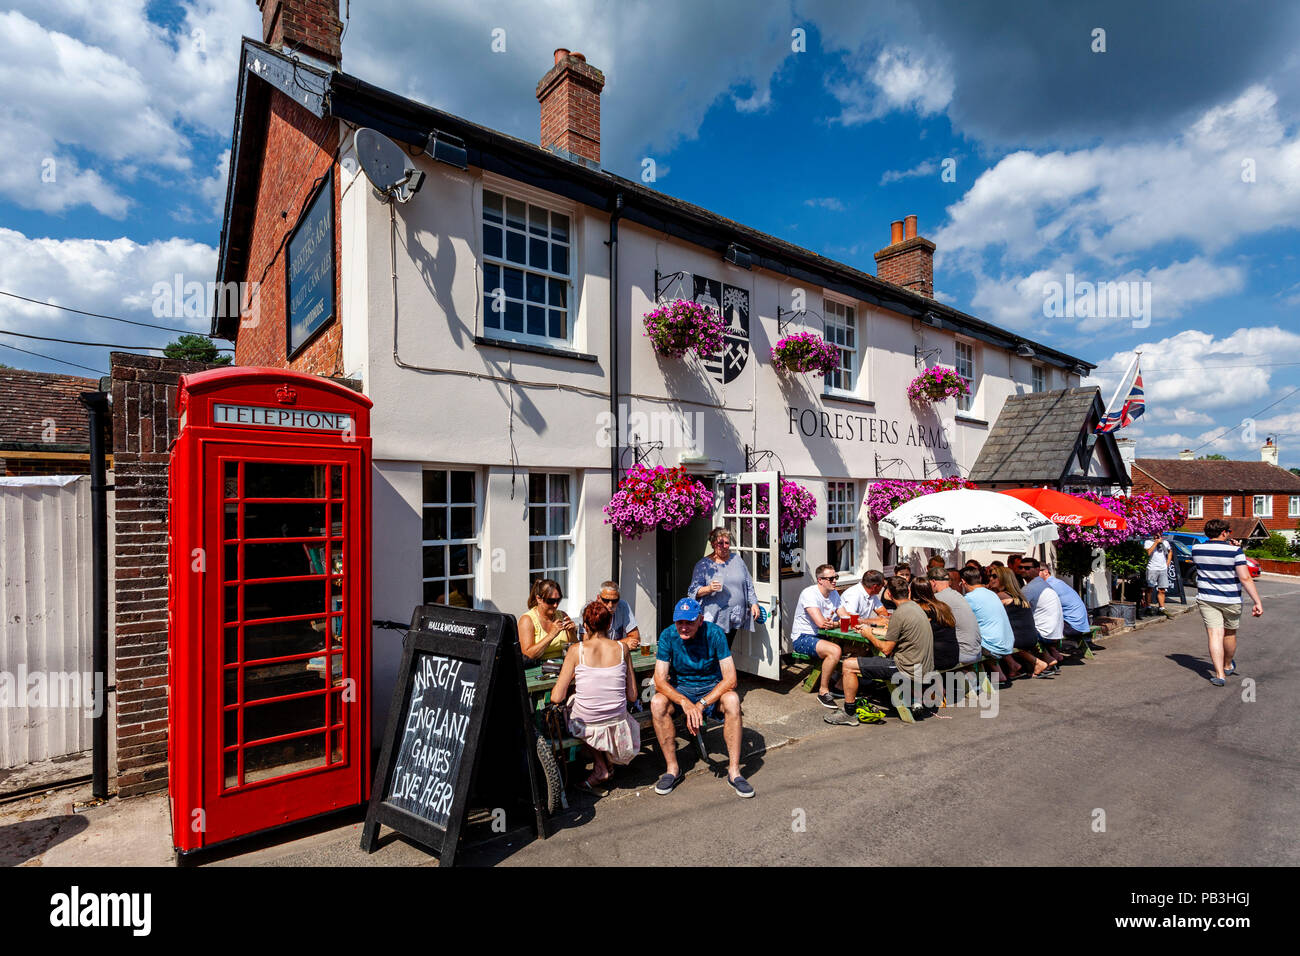 A Traditional Country Pub In The Village Of Fairwarp, Sussex, United Kingdom - Stock Image